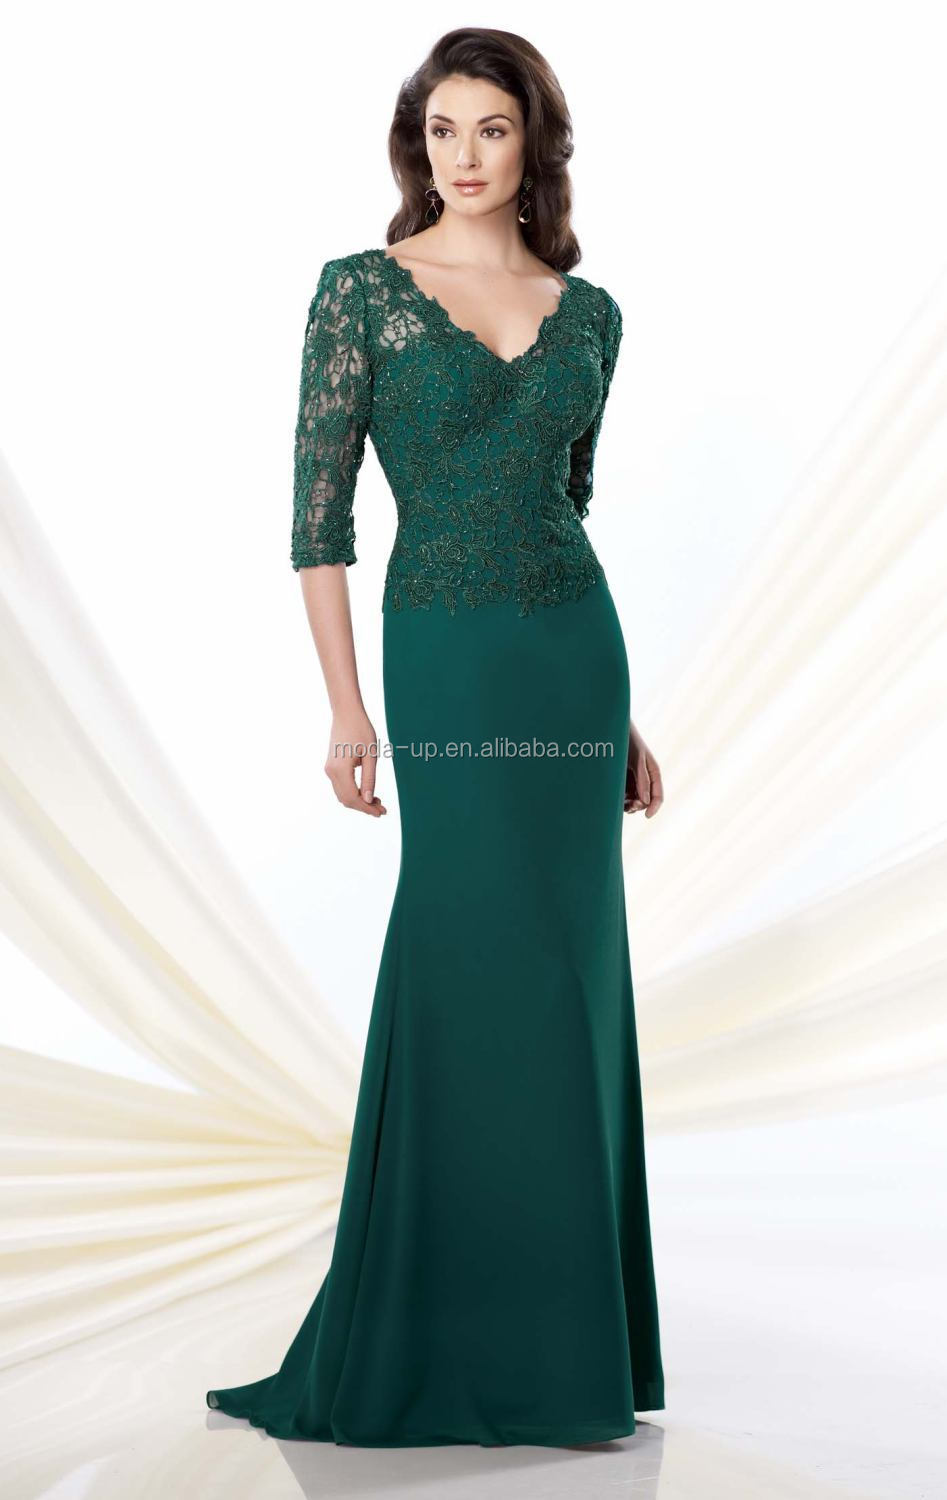 Wholesale Modest mother of the bride dresses, green mother bride ...